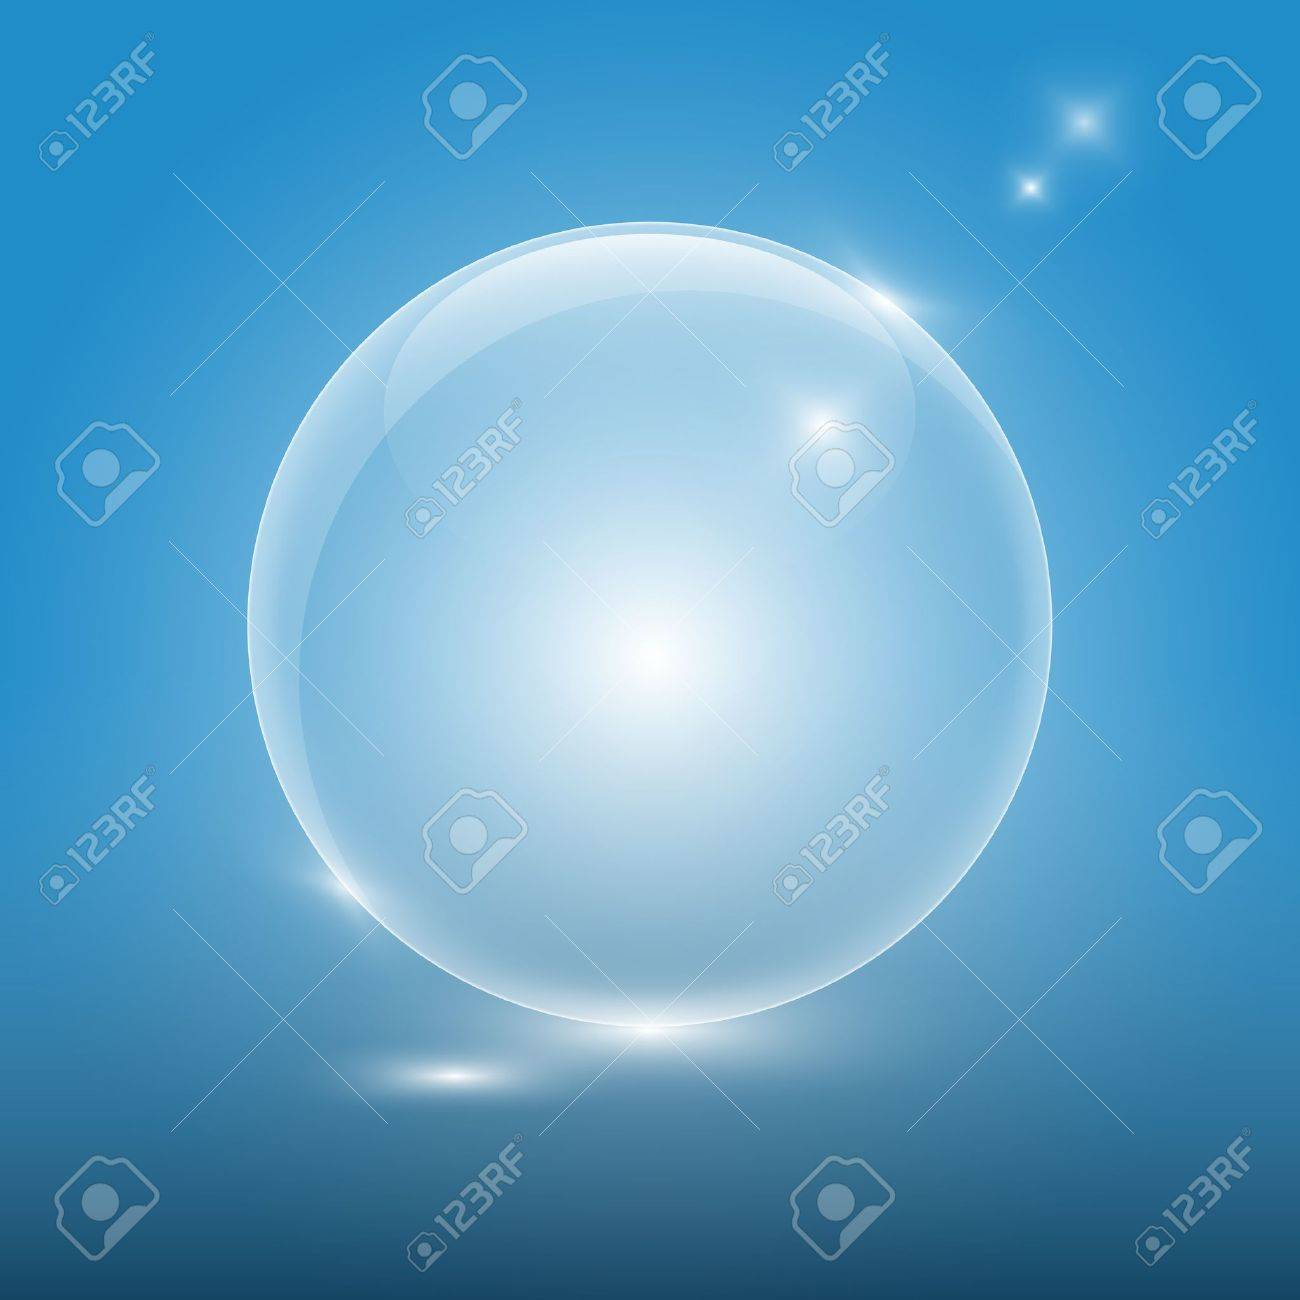 Transparent glass ball on blue background Stock Vector - 17421601